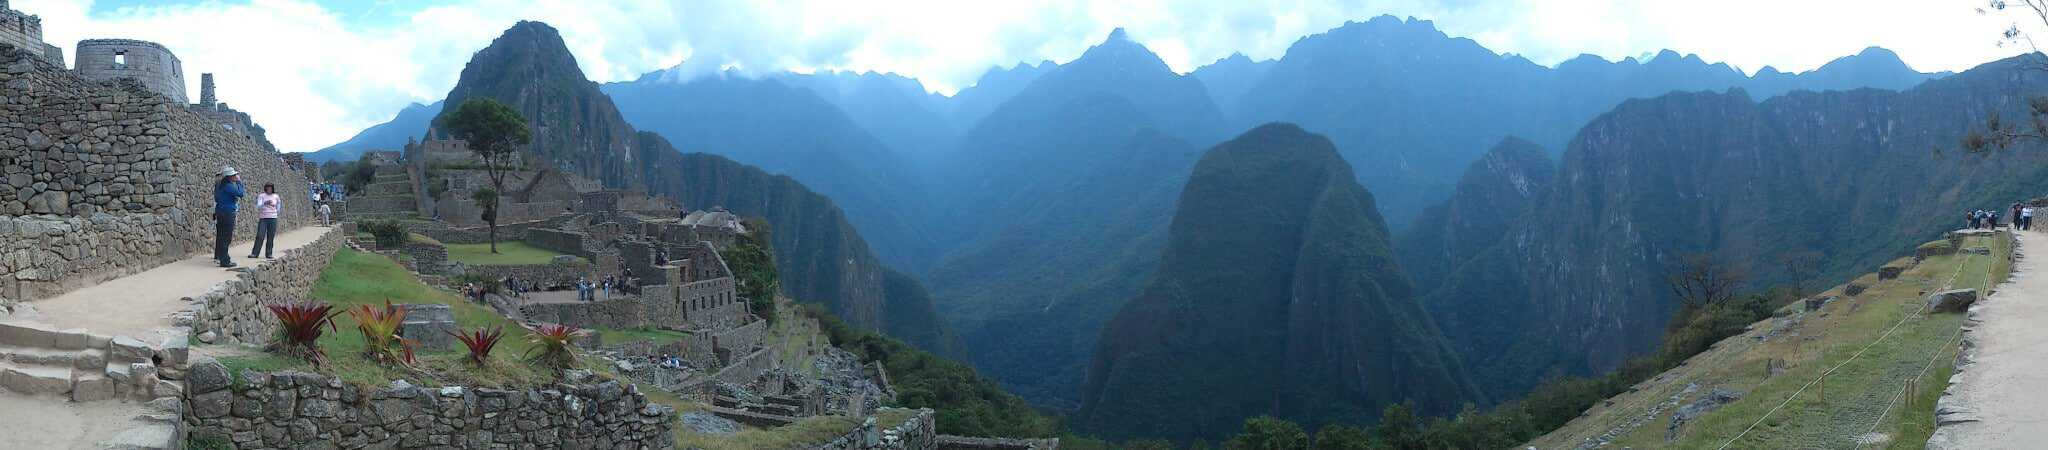 Machu Picchu Mountain and Ruins - Machu Picchu Trail - Only Once Today